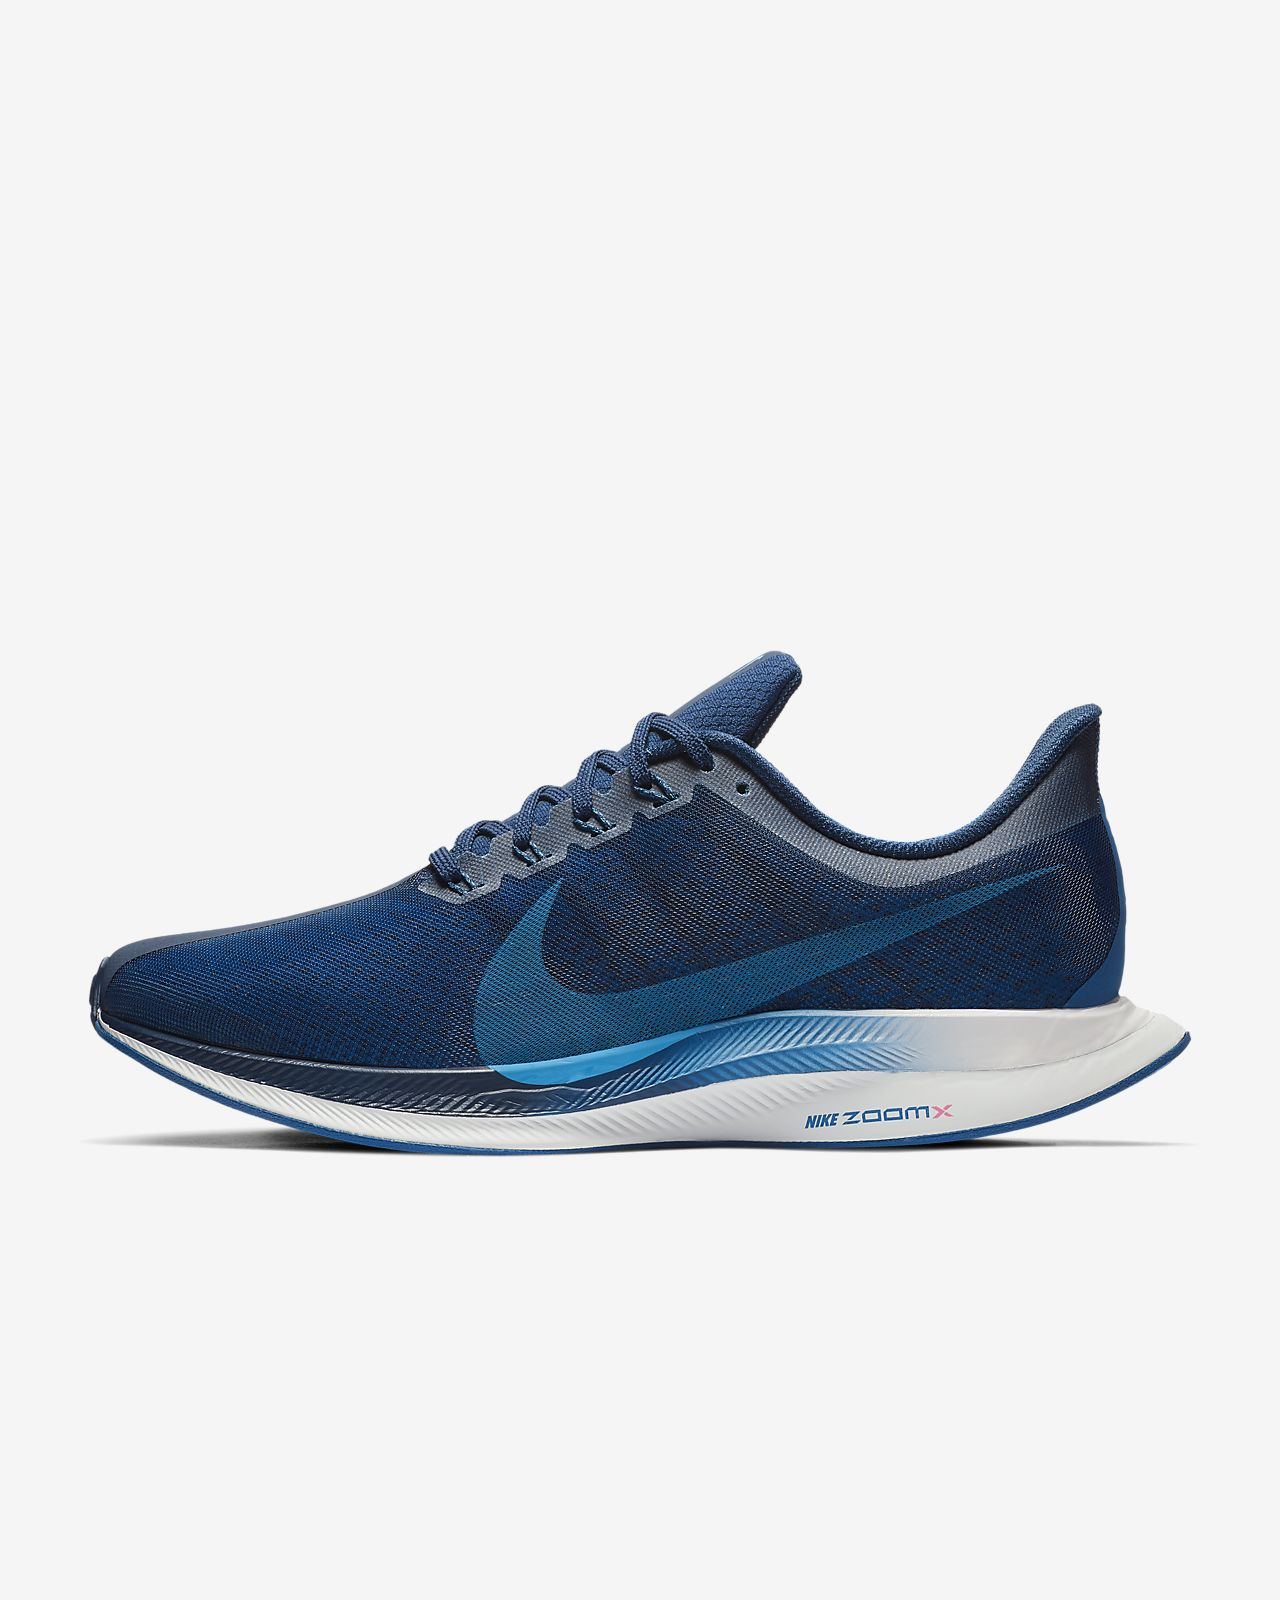 outlet store 4d609 f8668 ... Nike Zoom Pegasus Turbo Zapatillas de running - Hombre